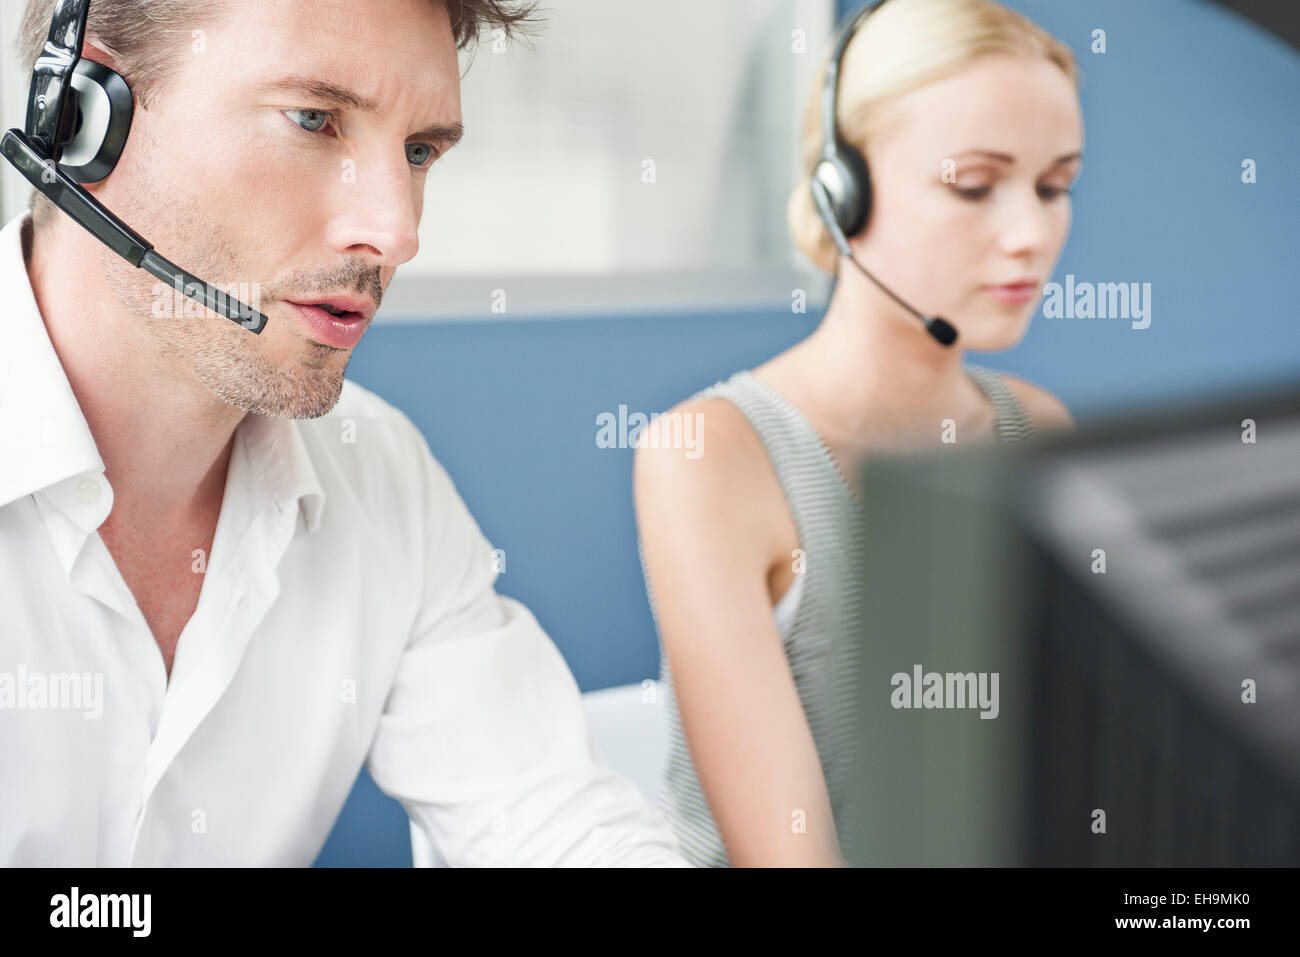 Working in call center - Stock Image